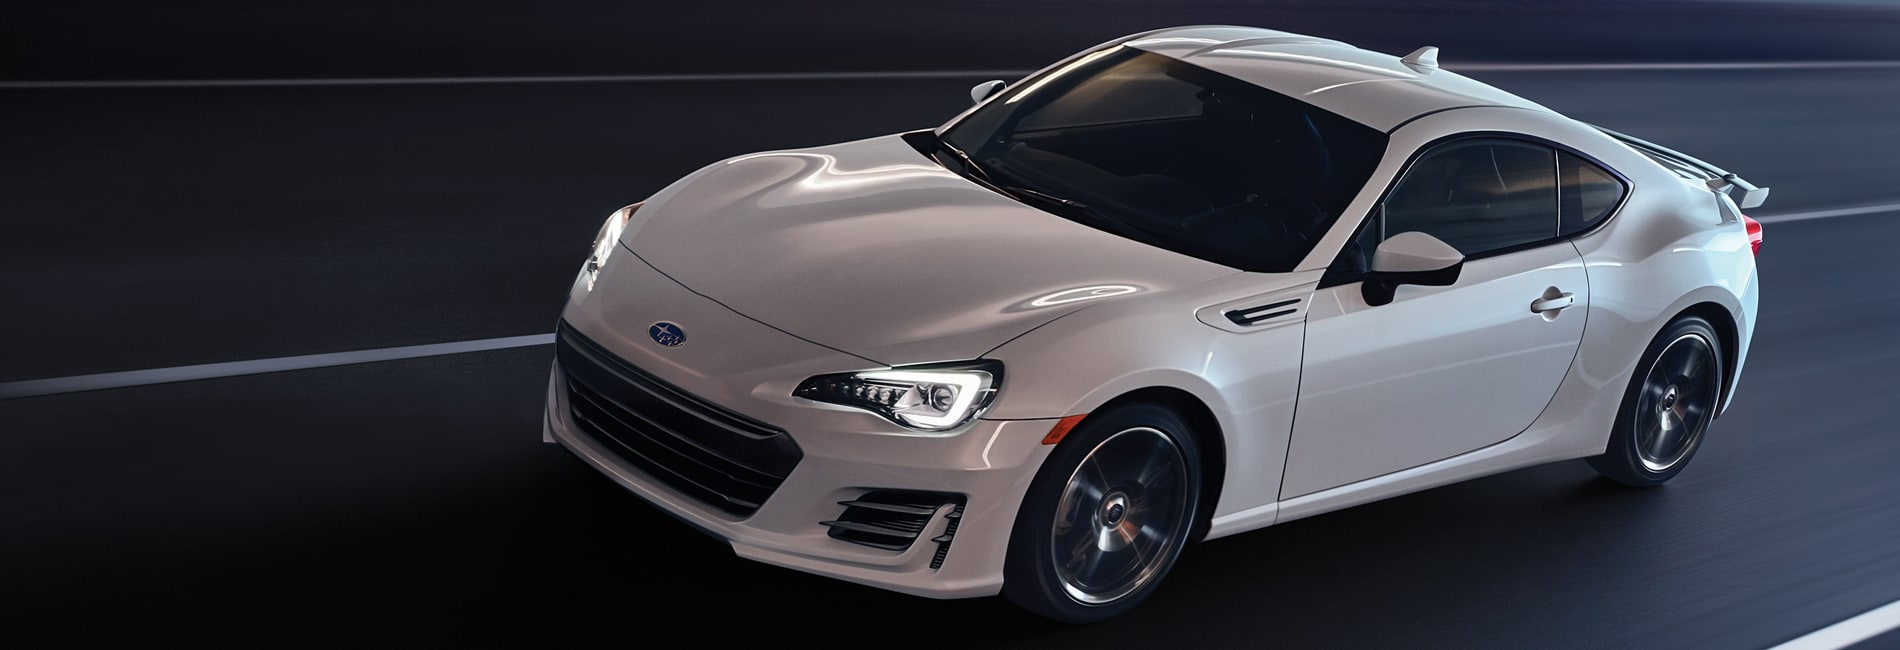 2019 Subaru BRZ Exterior Features